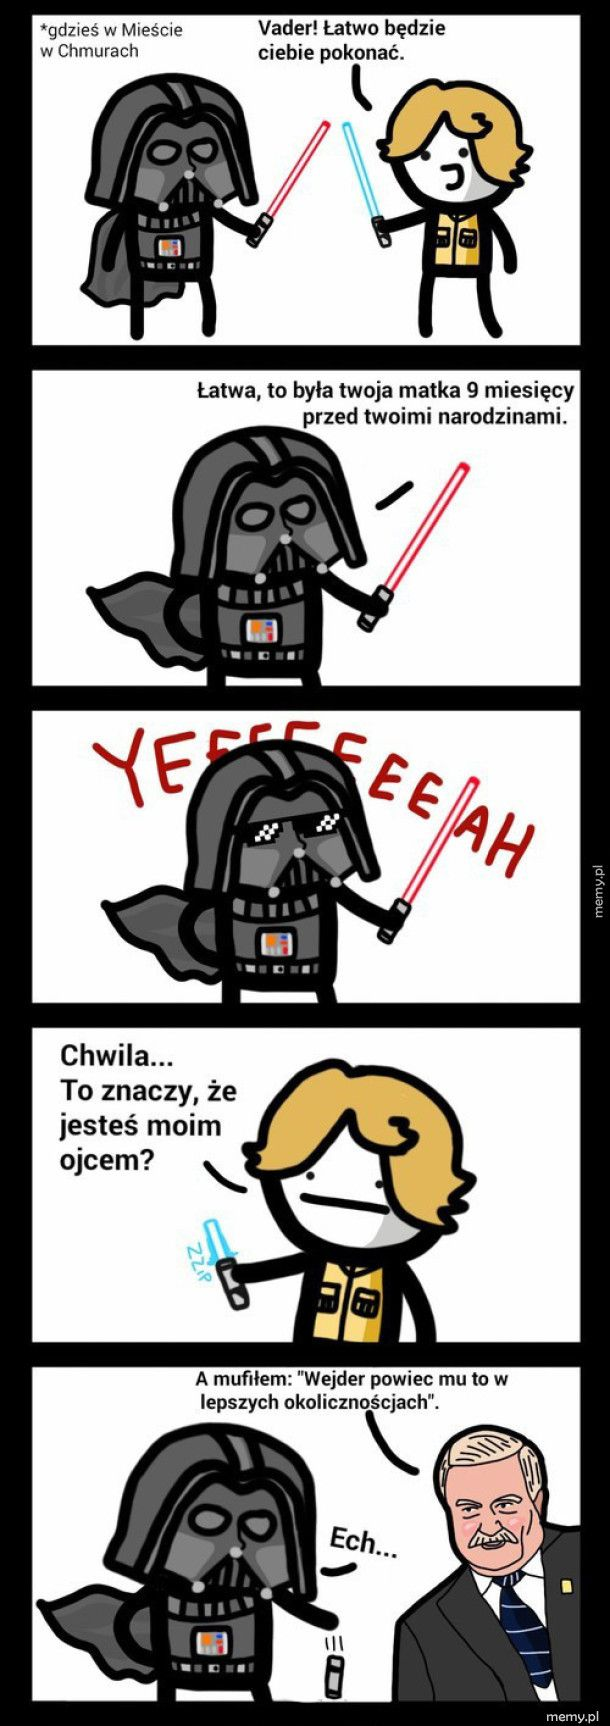 Luke Skywalker vs. Darth Vader